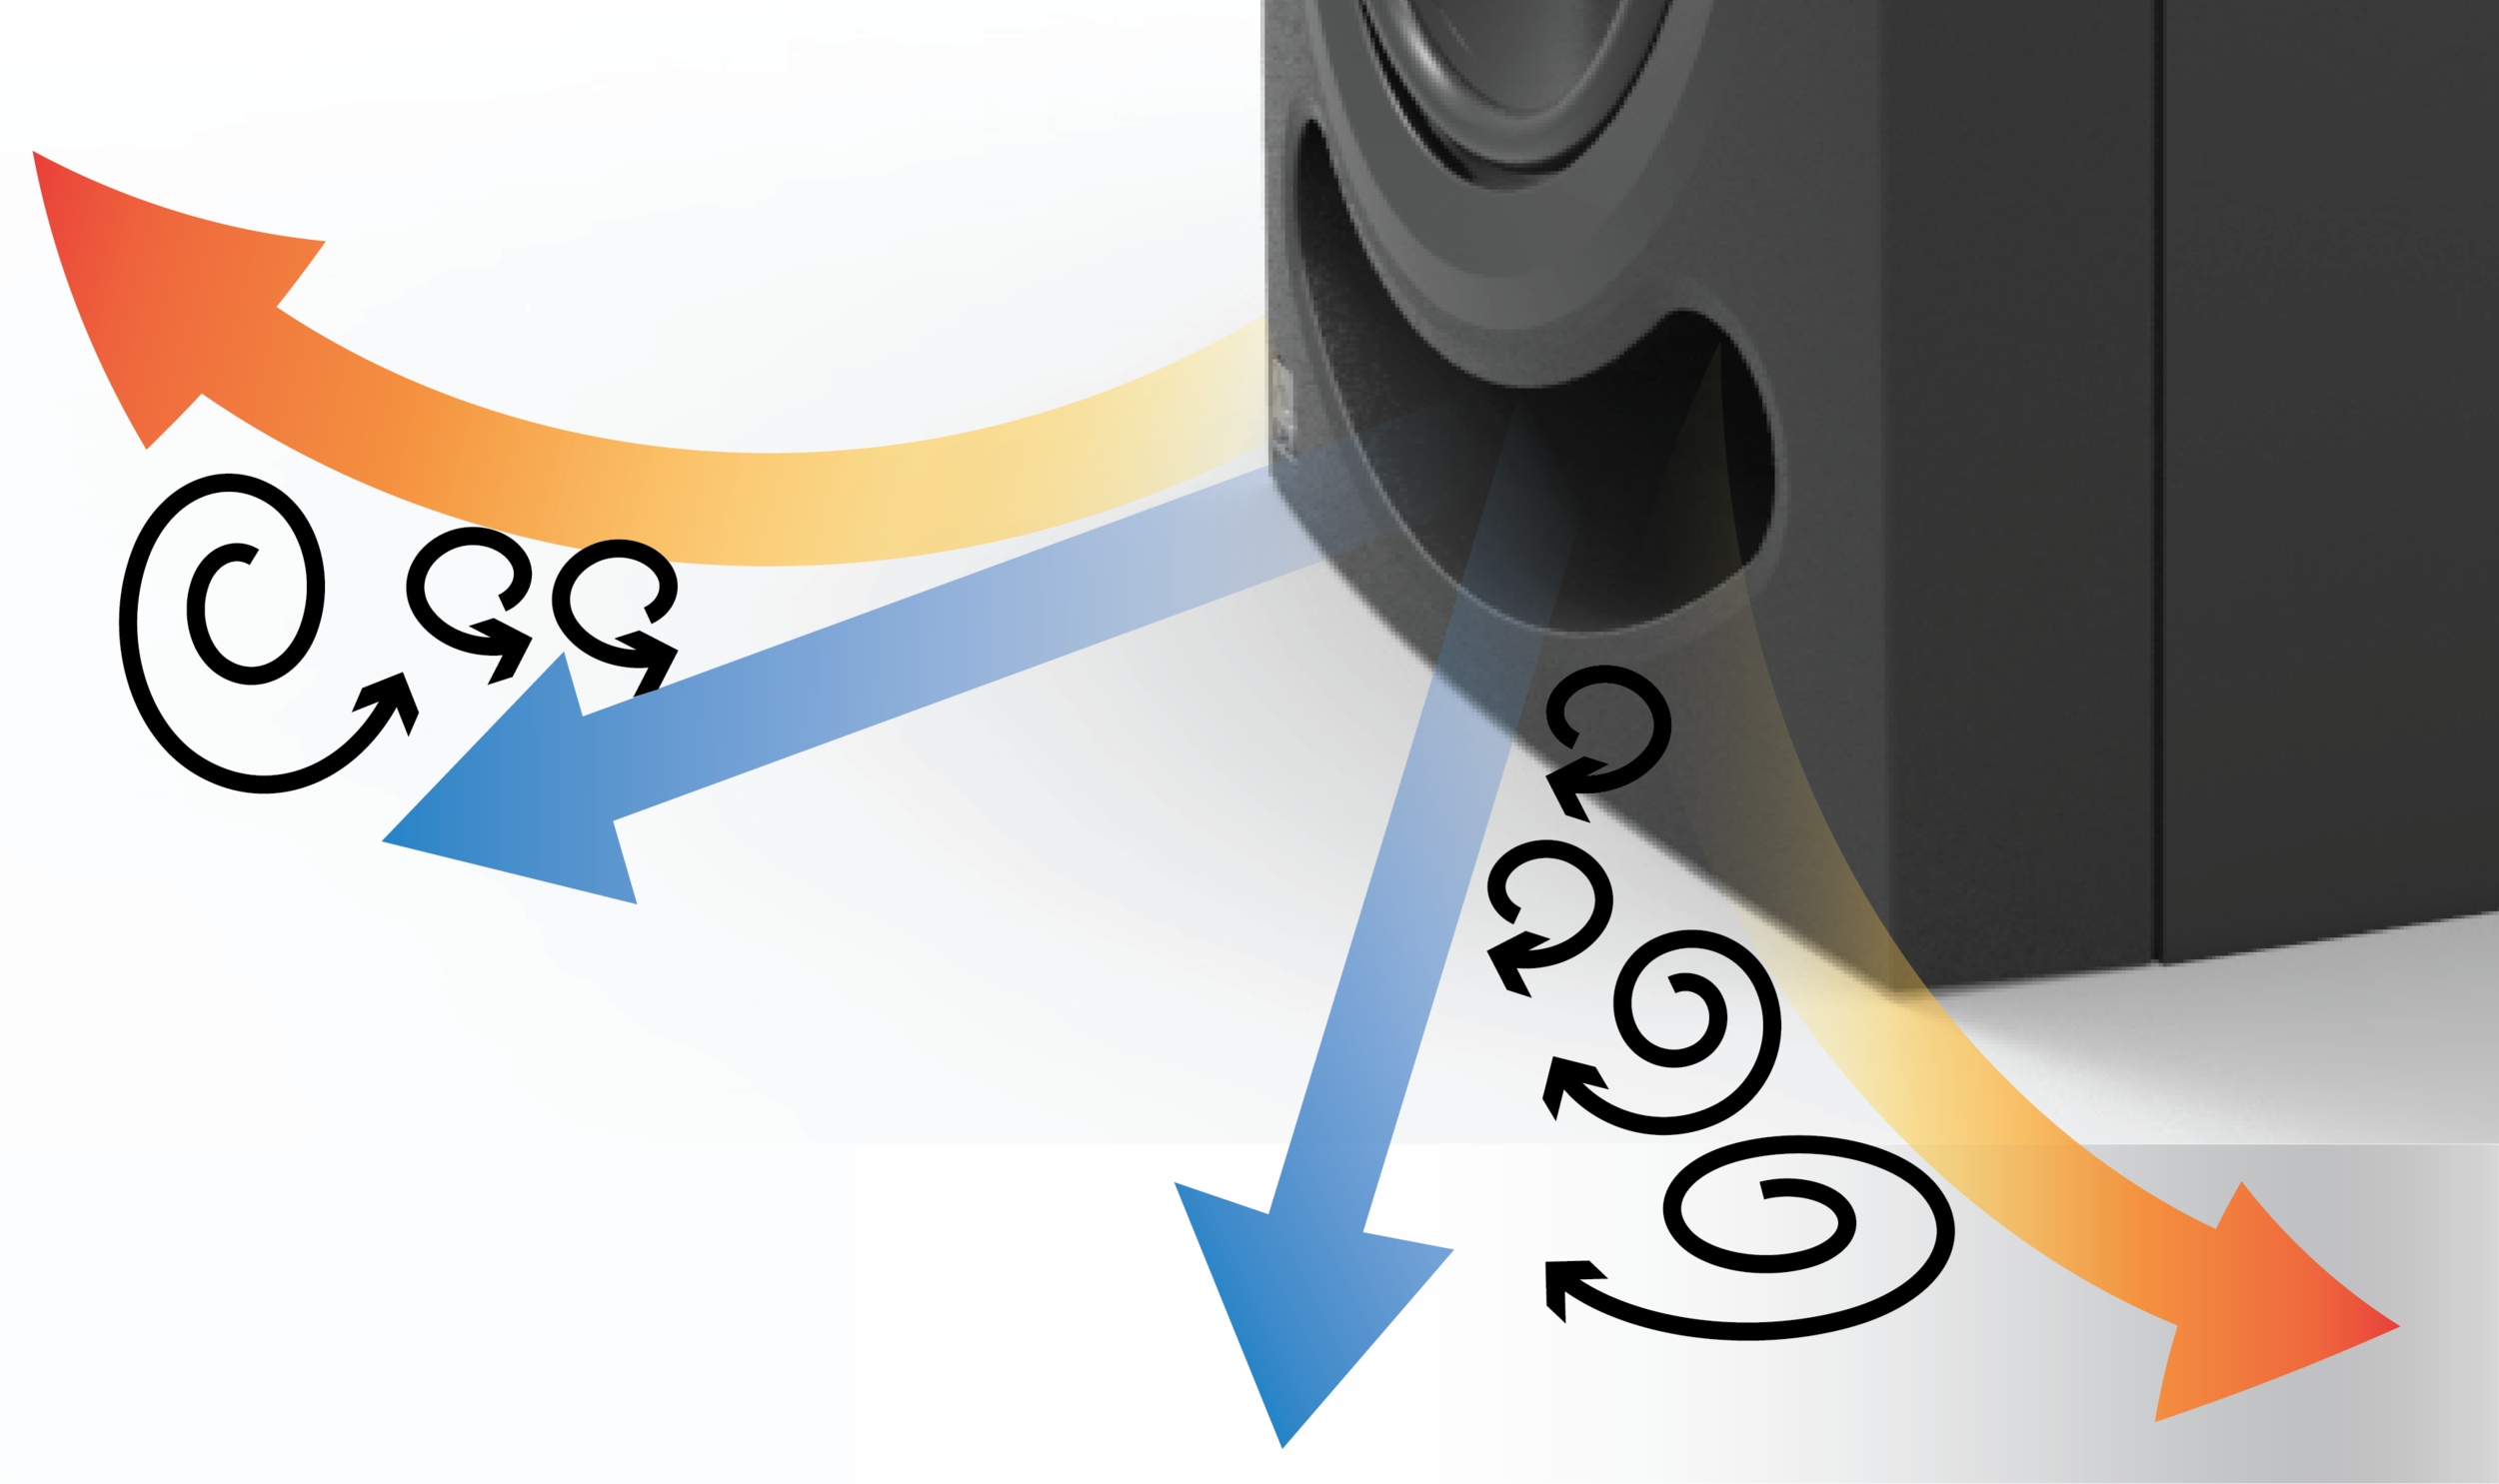 A standard port tube: air leaving the port tube at different velocities creates noisy turbulence.